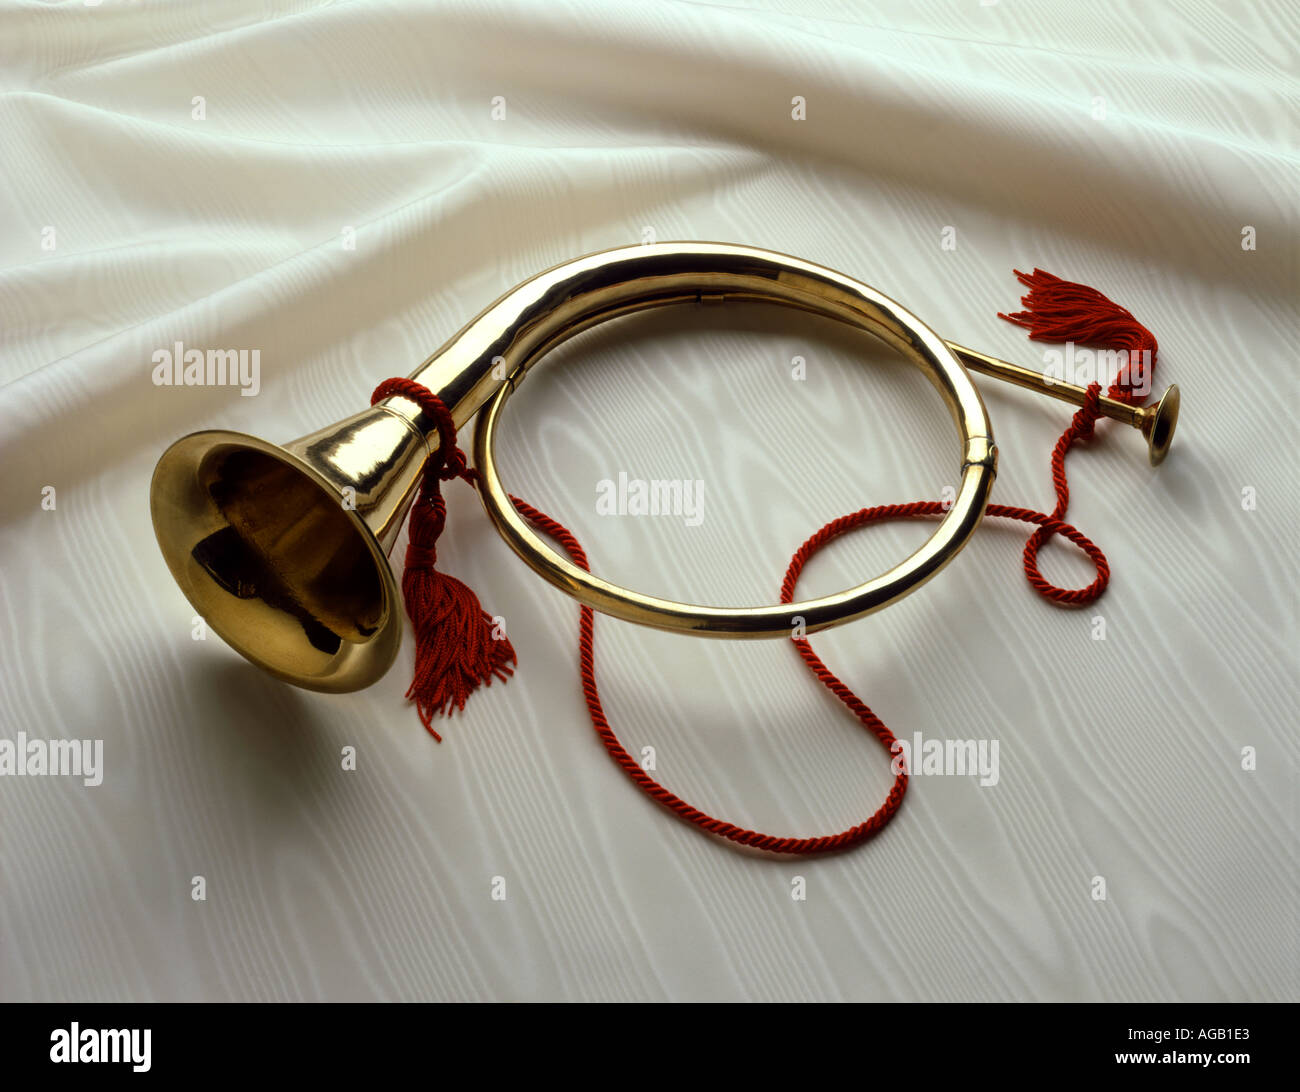 Horn Ornaments Christmas beautifies adorns decorates holidays celebrate Music instrument - Stock Image